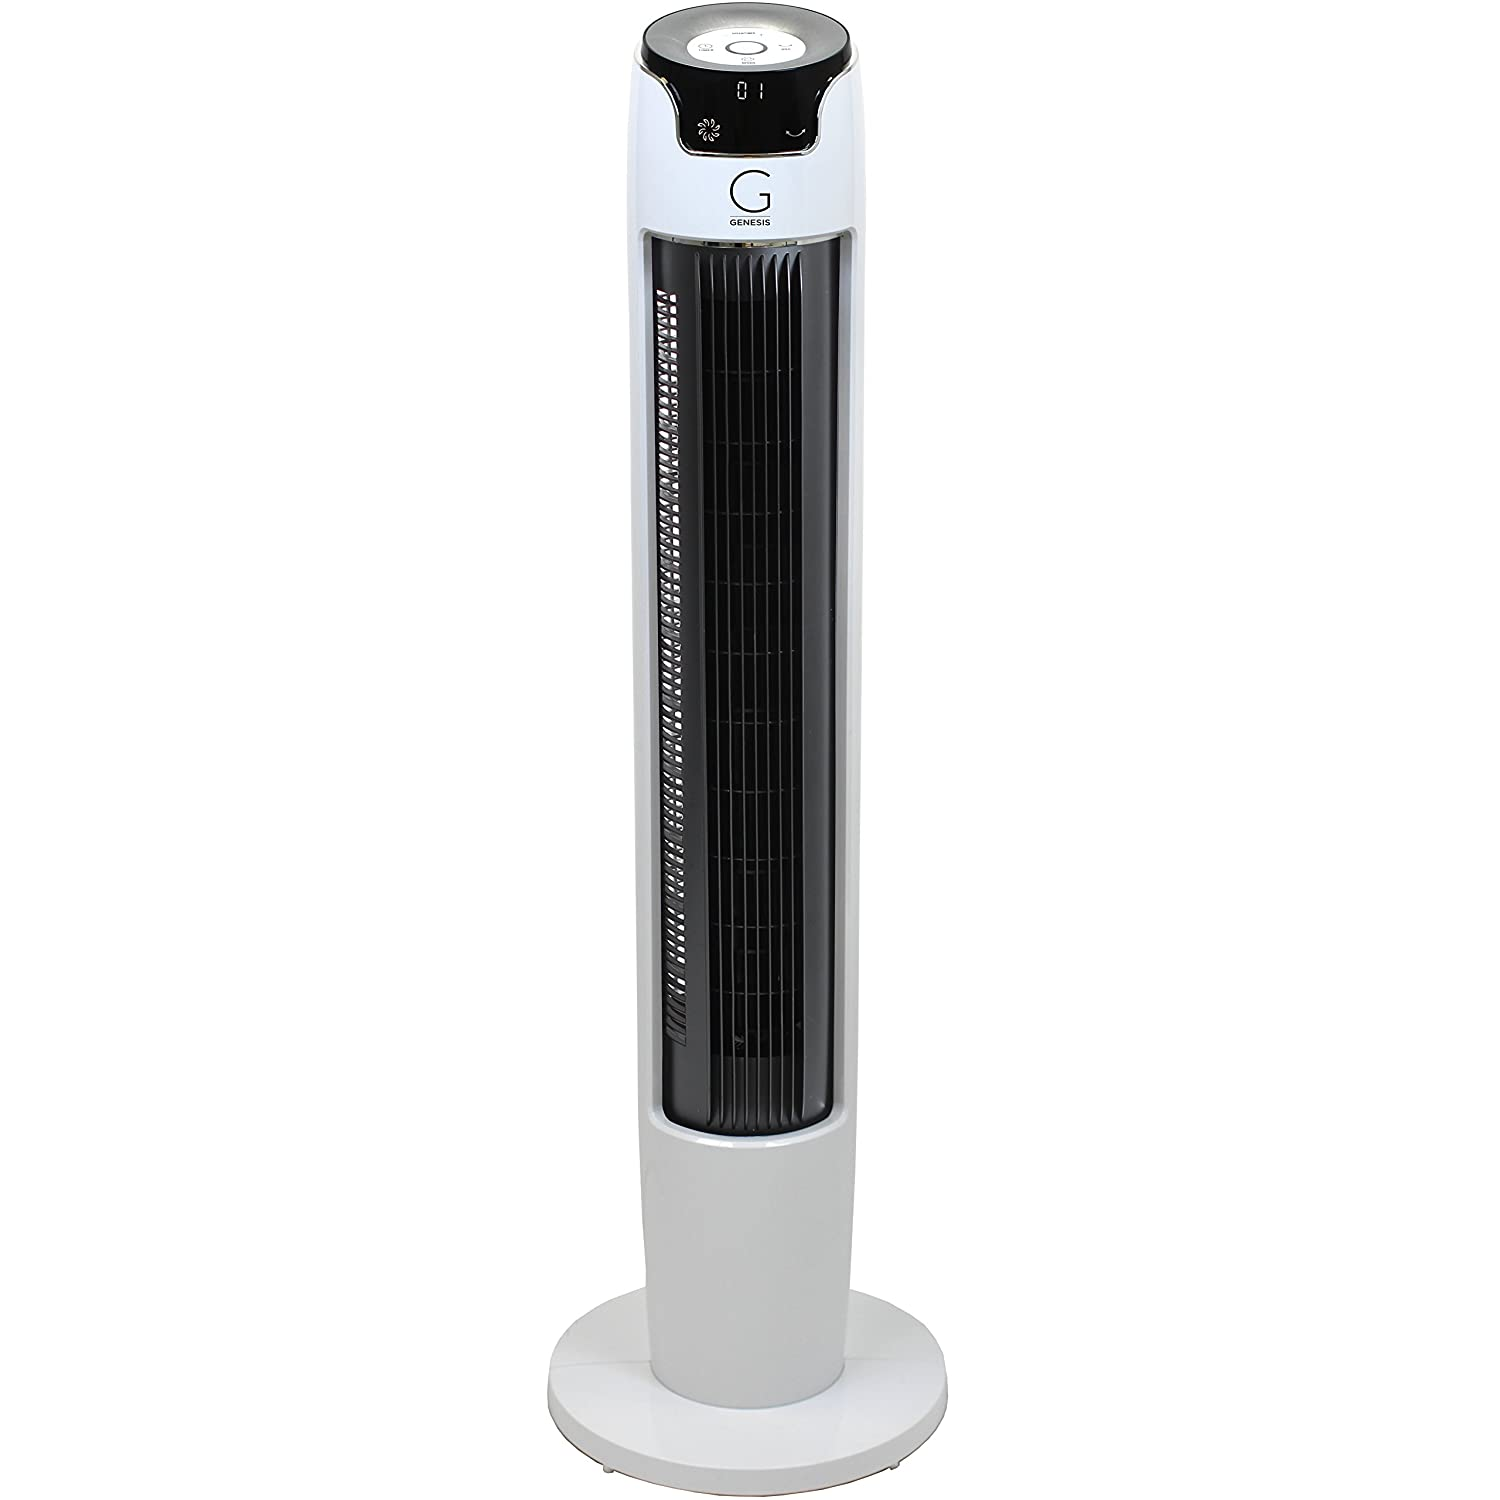 Genesis 43 Inch Oscillating Digital Tower Fan with Remote and Max Cool Technology